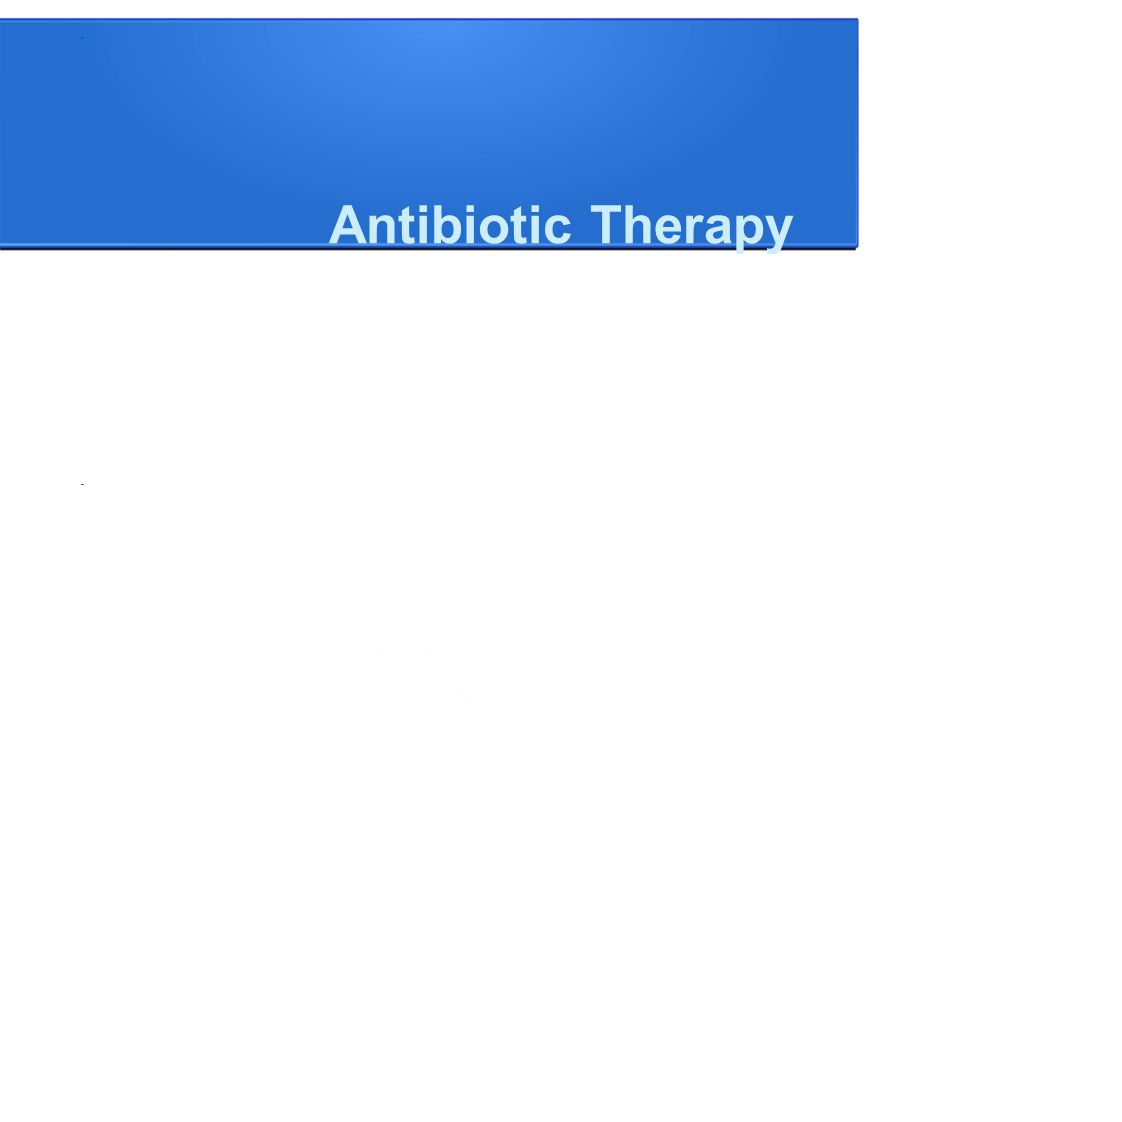 Antibiotic Therapy lBegin intravenous antibiotics within first hour of recognition of severe sepsis.